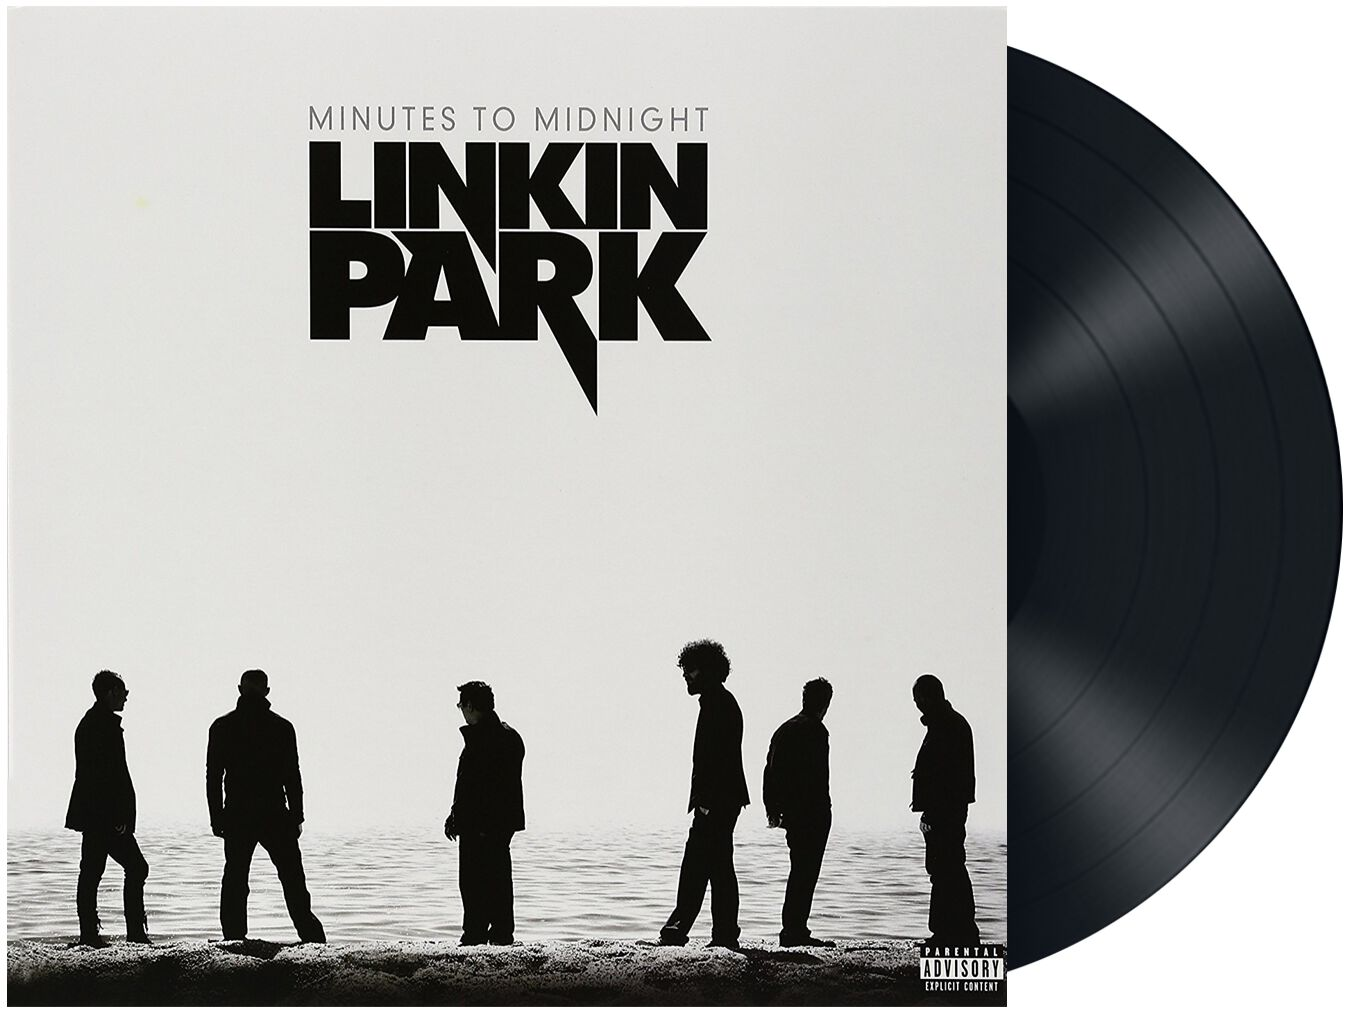 Image of   Linkin Park Minutes to midnight LP standard